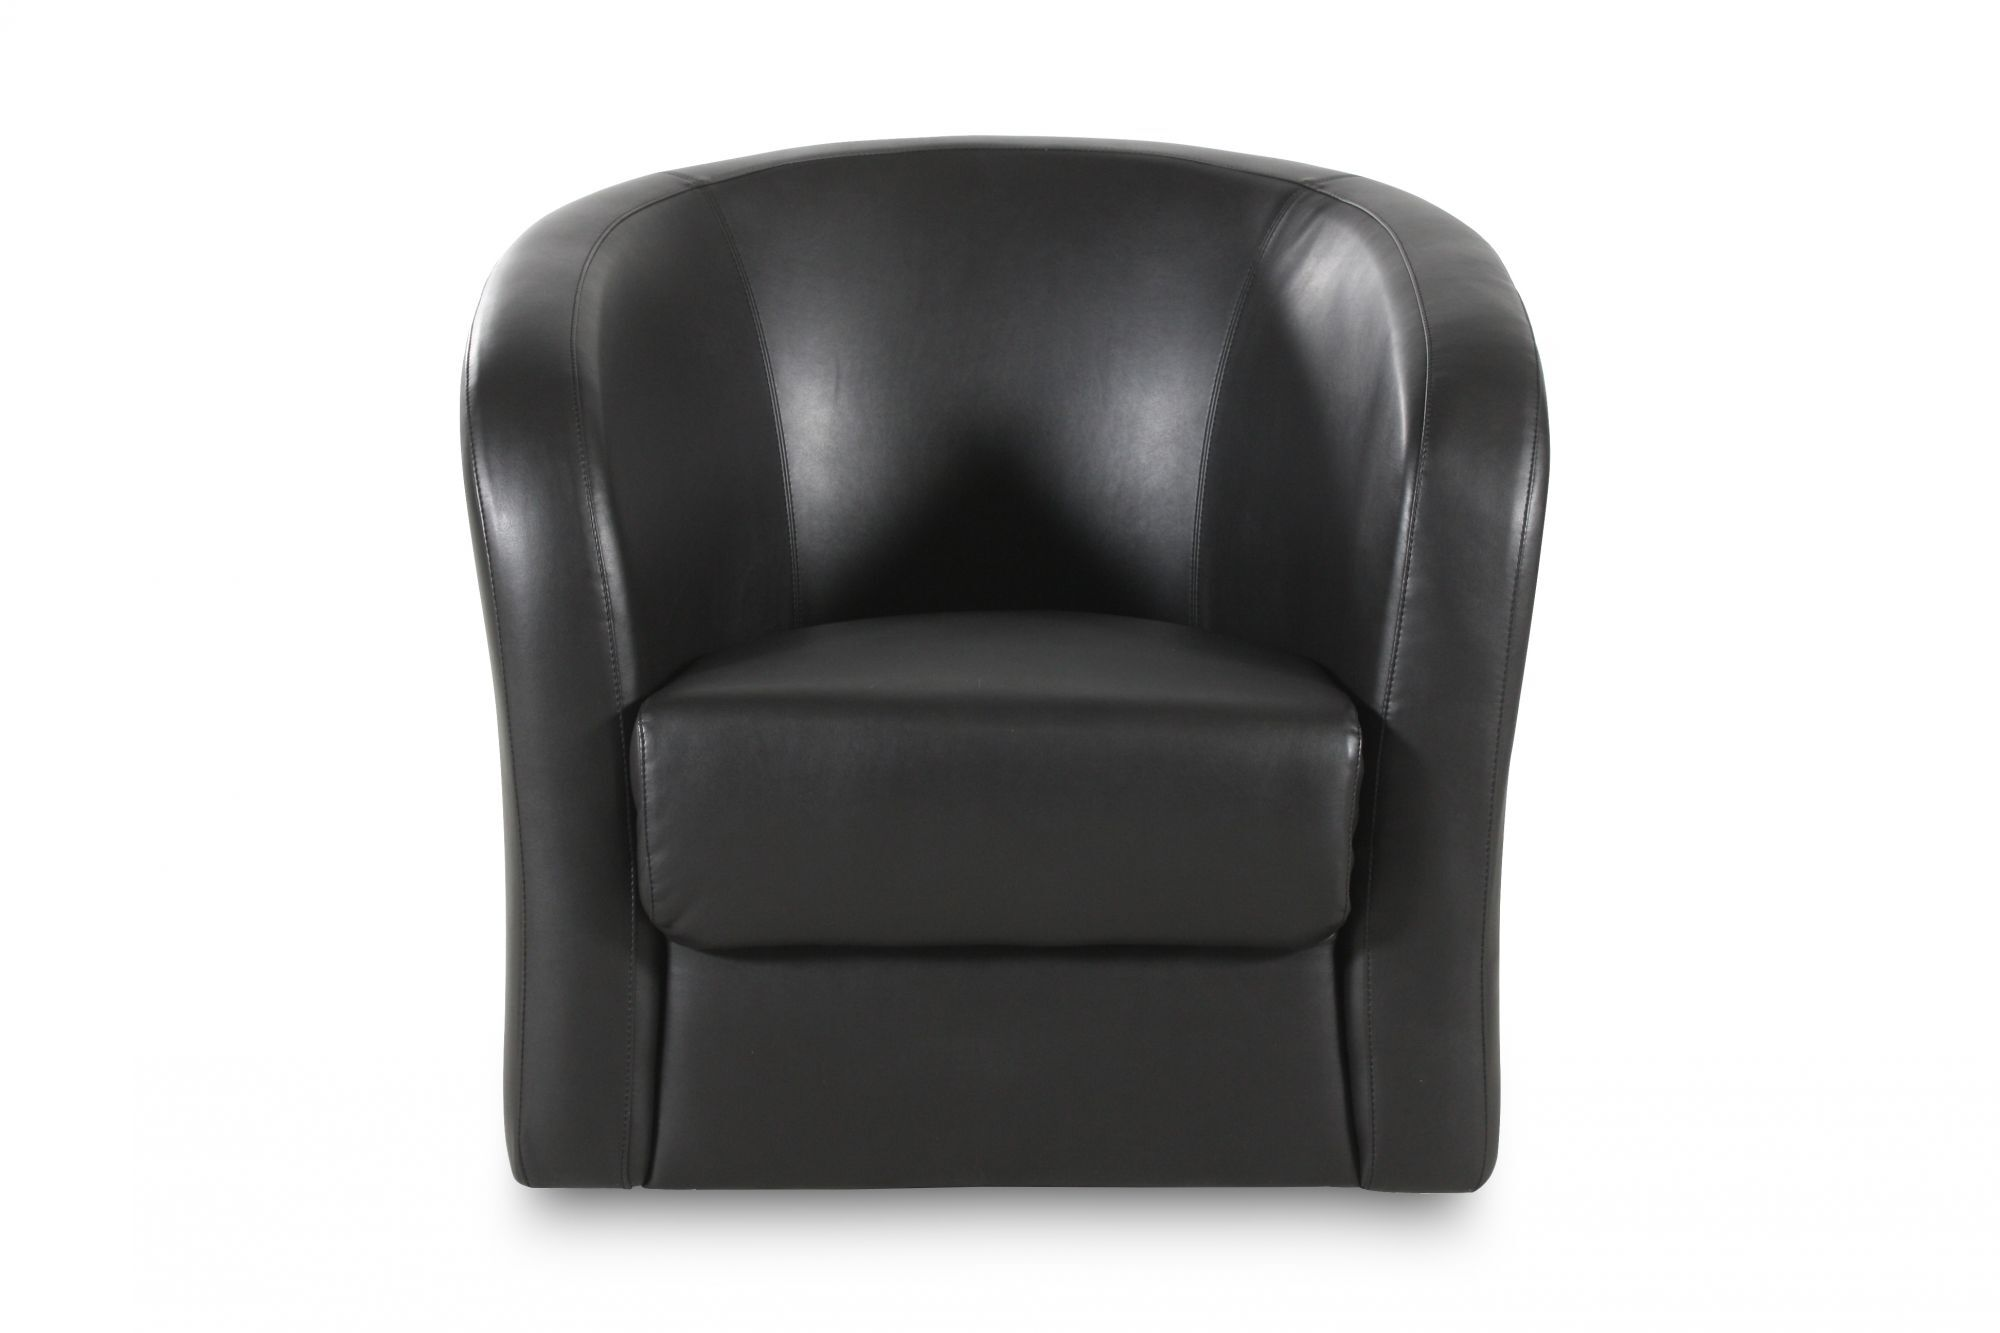 zara swivel chair event chairs for sale boulevard furniture mathis brothers low back in onyx